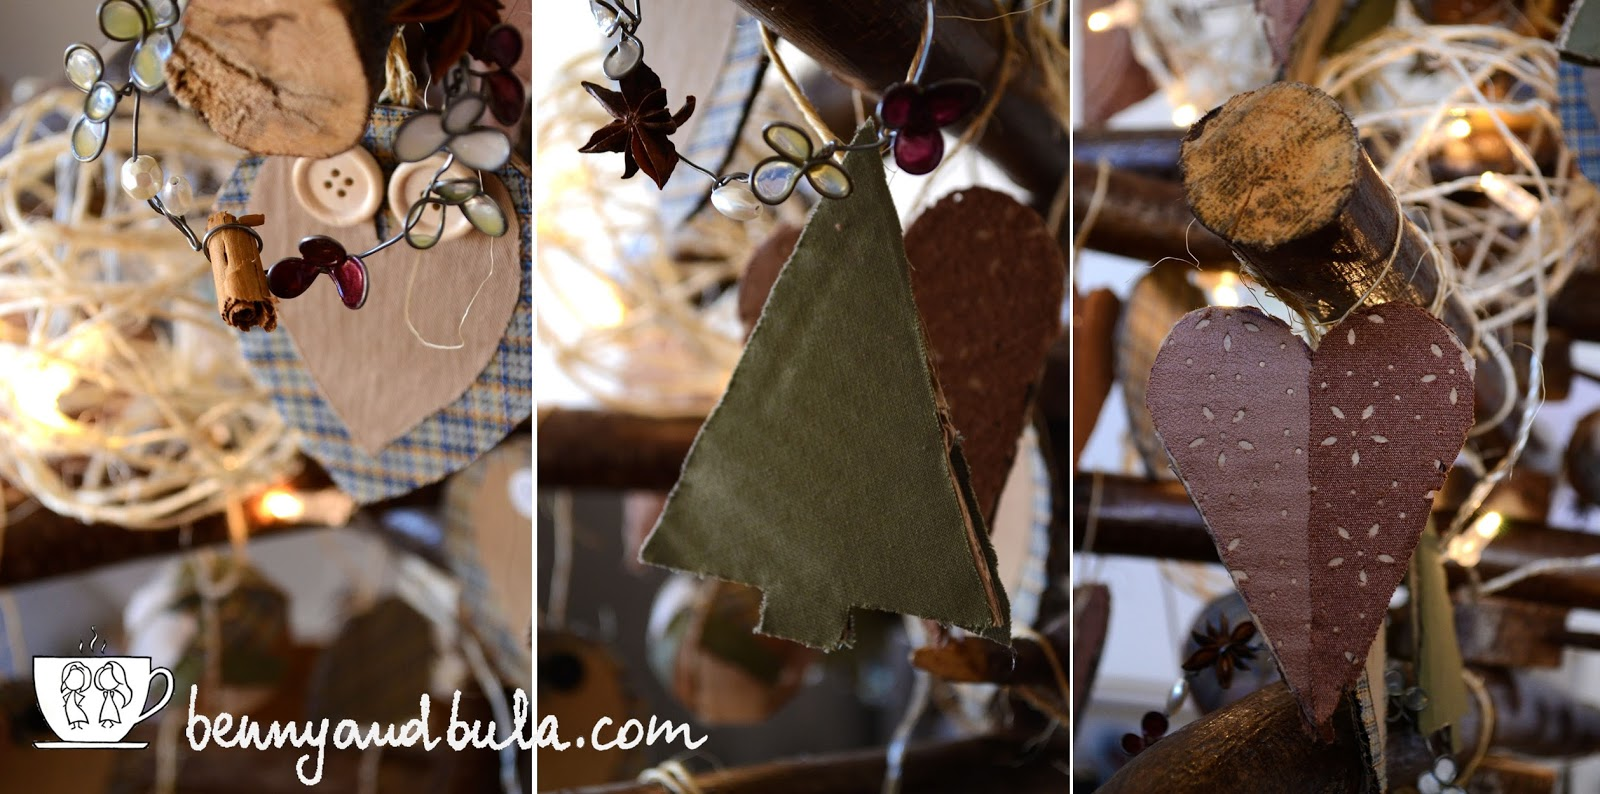 Albero di Natale fai da te/DIY Christmas Tree tutorial